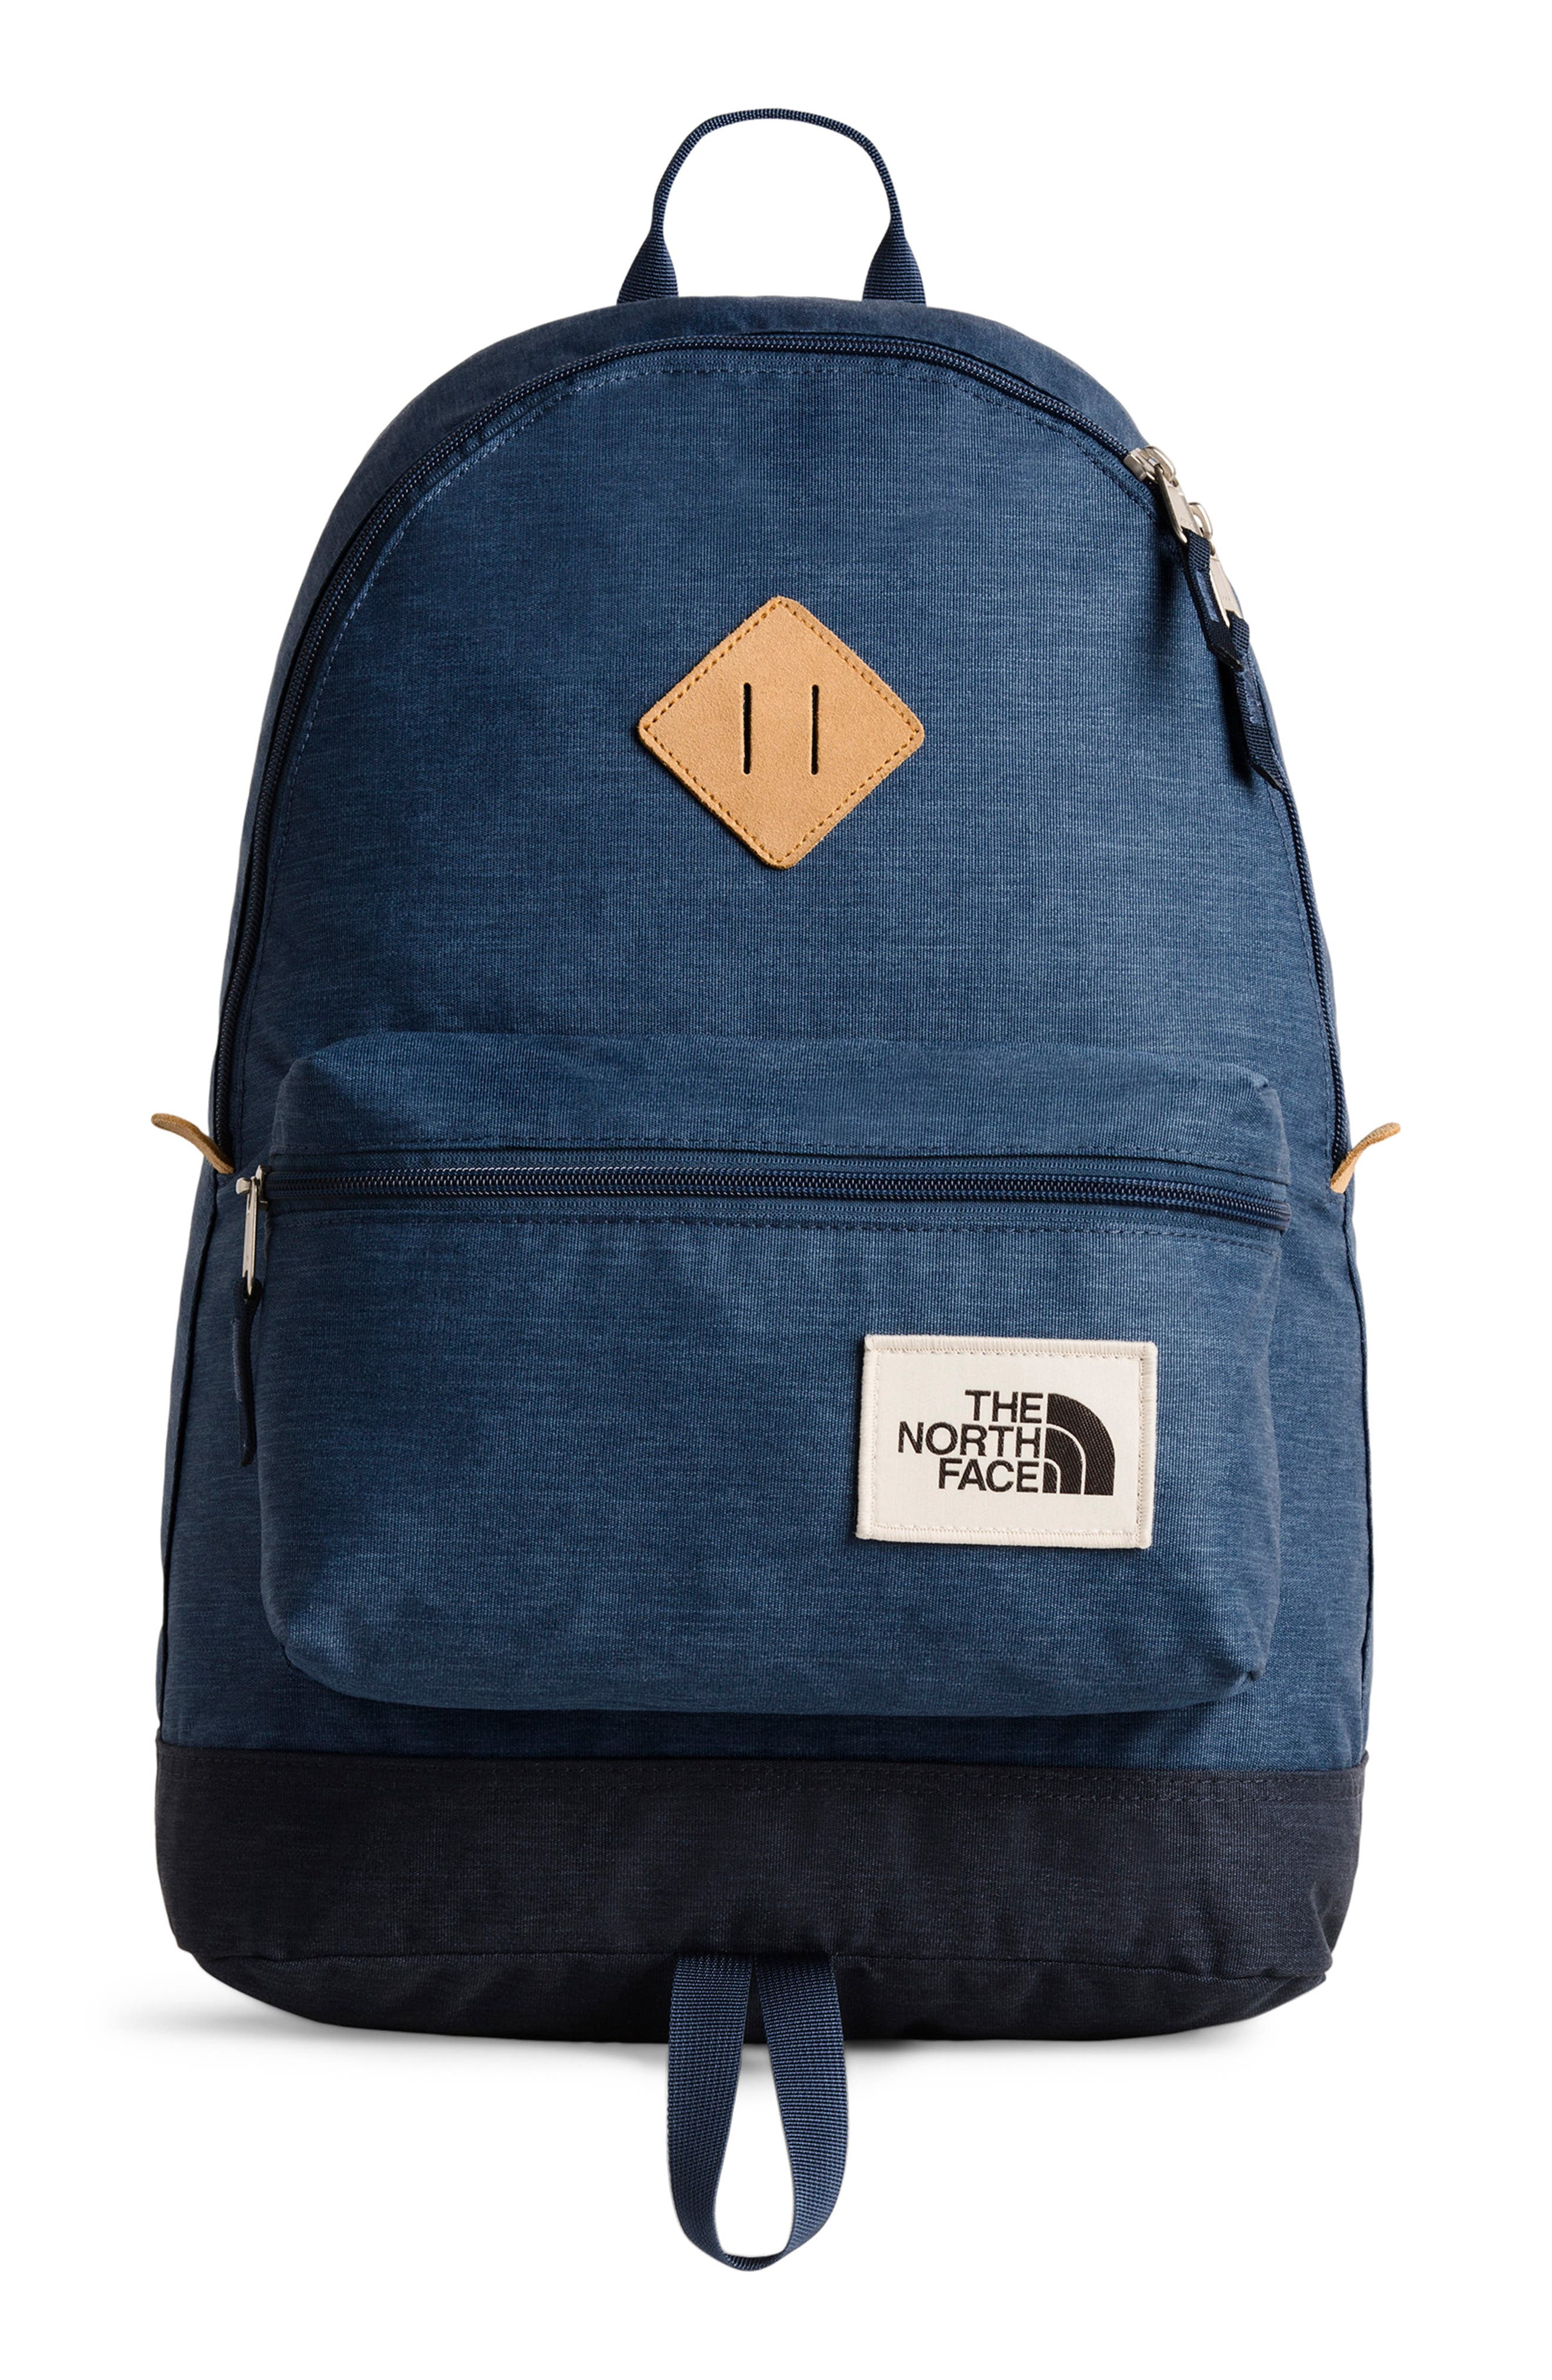 The North Face Berkeley Backpack - Blue